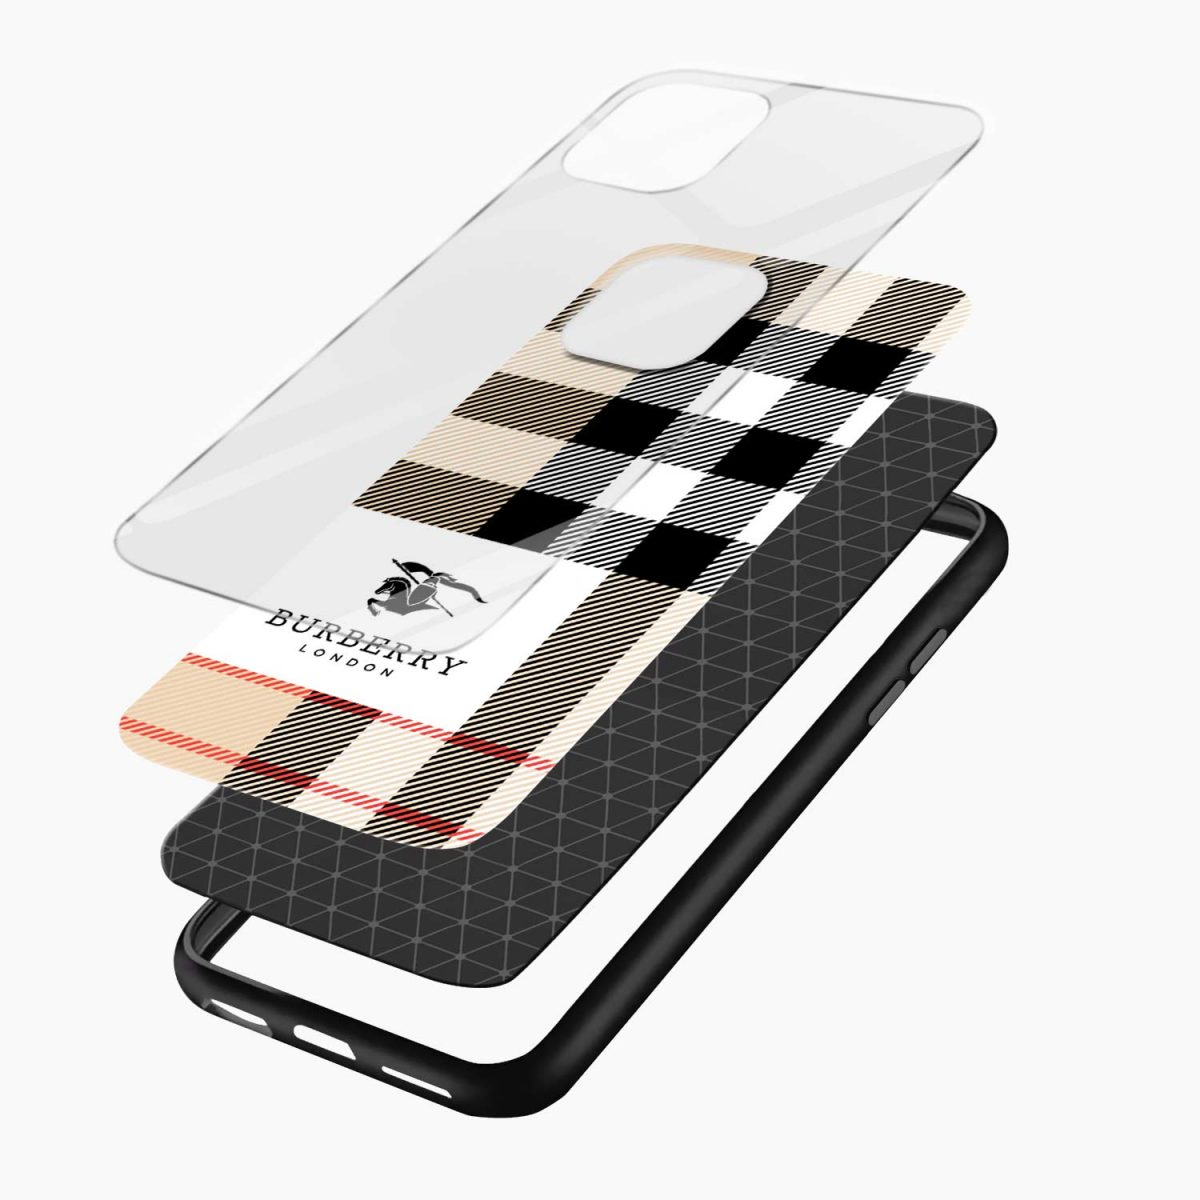 bulberry cross lines pattern iphone pro back cover layers view